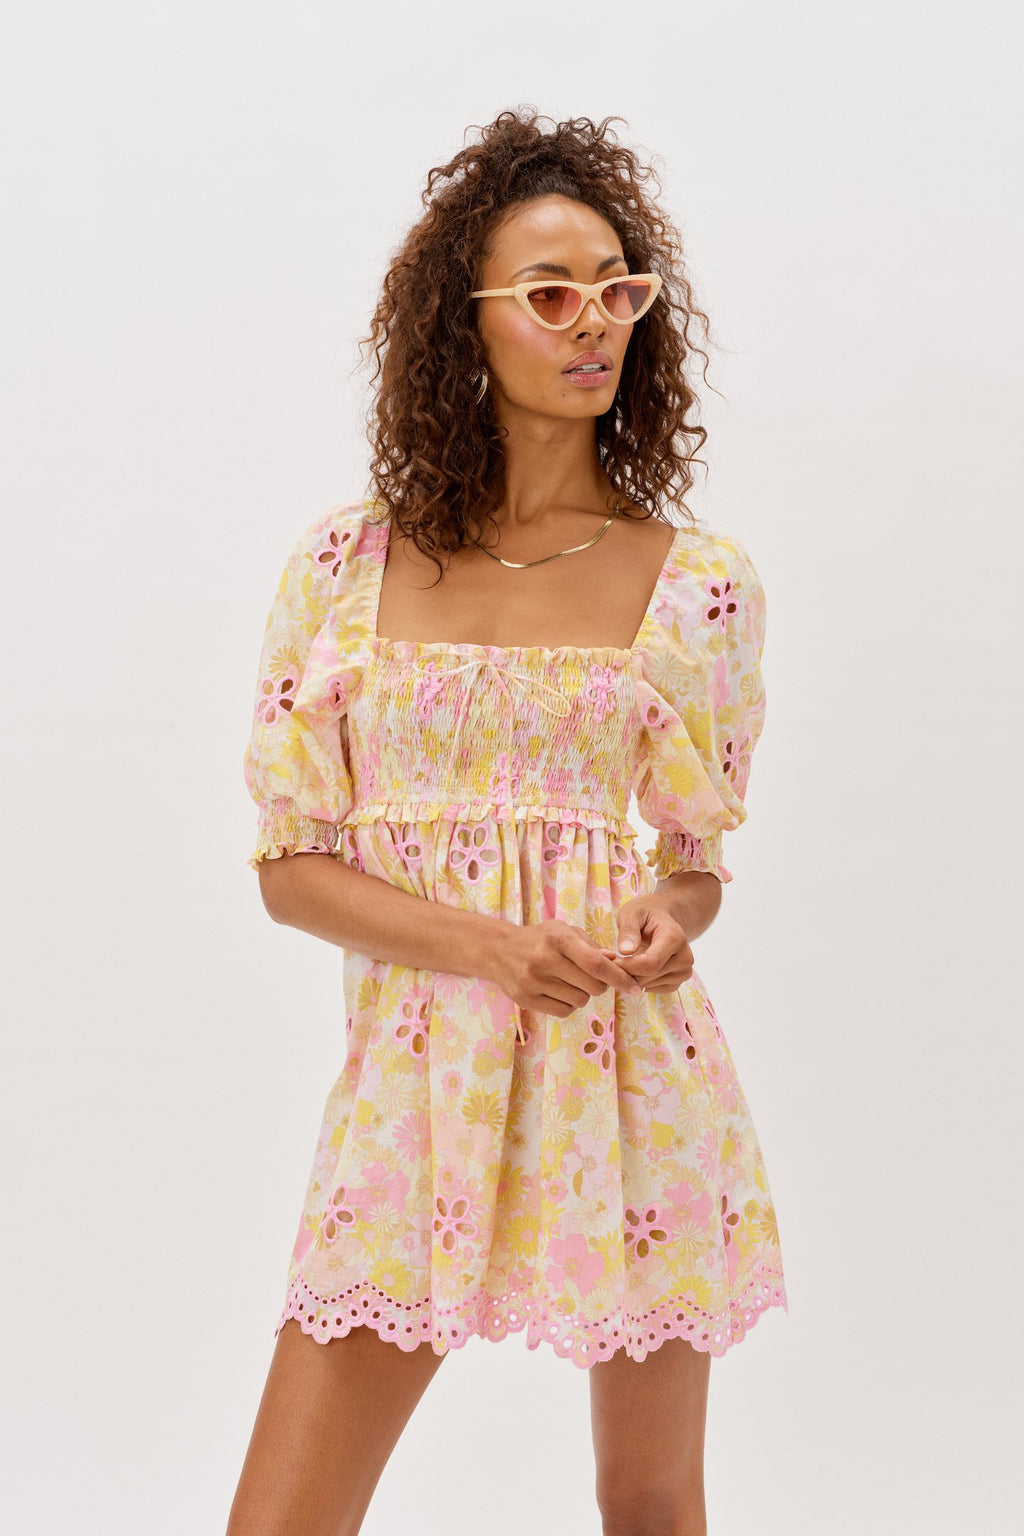 FOR LOVE & LEMONS CLAIRE MINI DRESS IN PINK